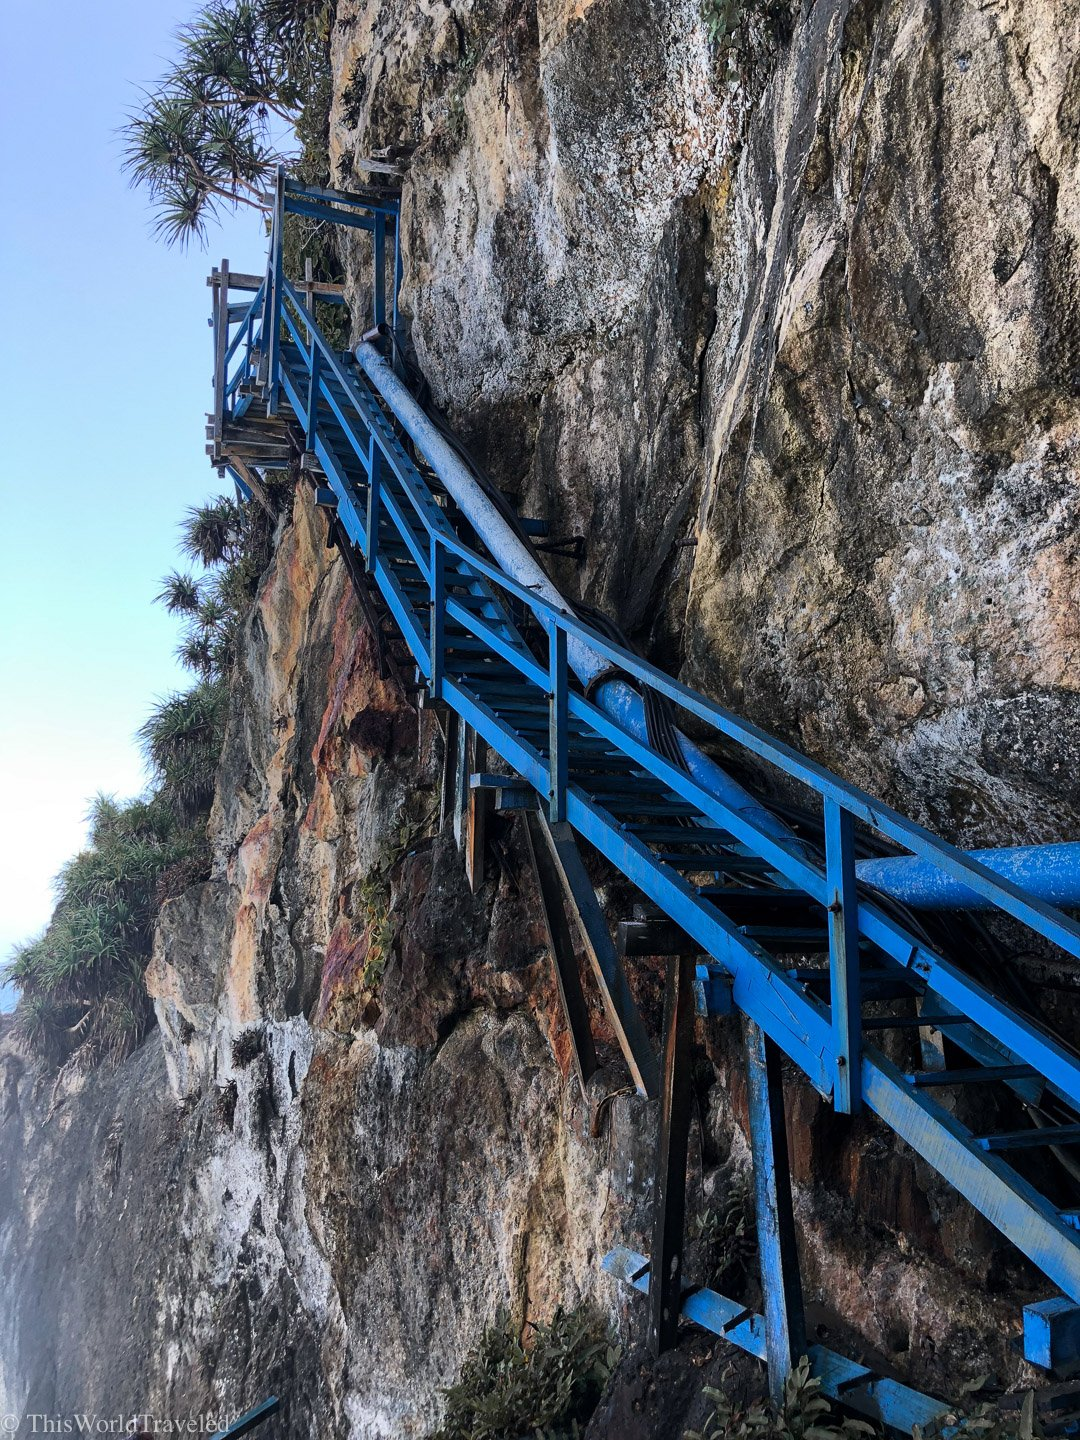 The steep blue stairs at the waterfall in Nusa Penida